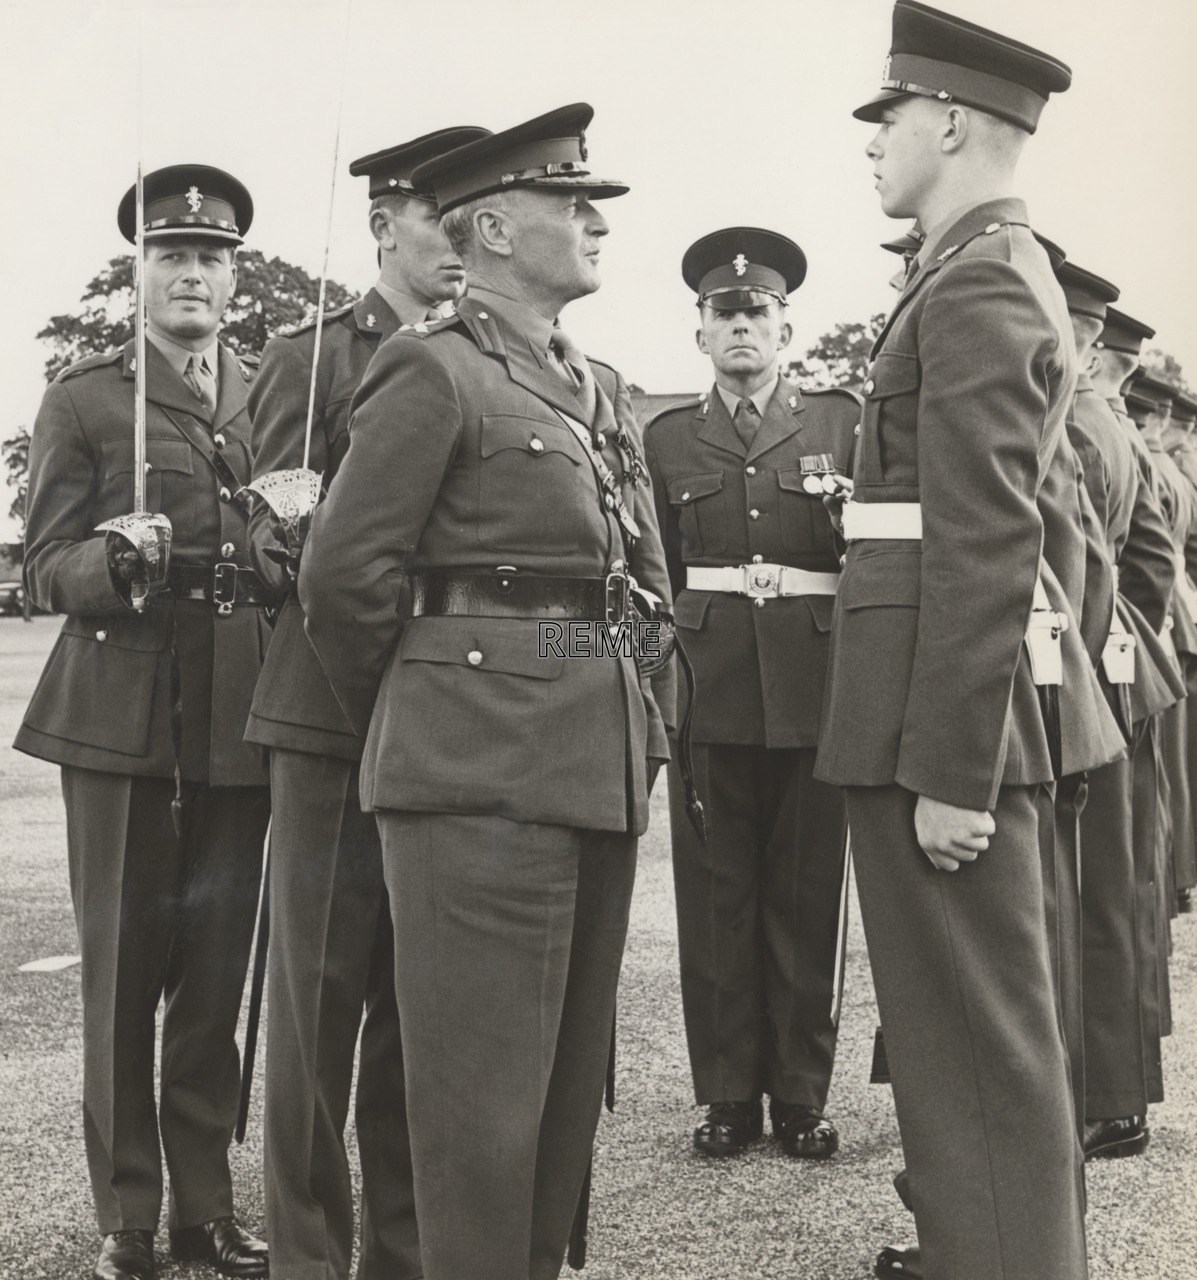 The 5000th recruit at The Depot REME